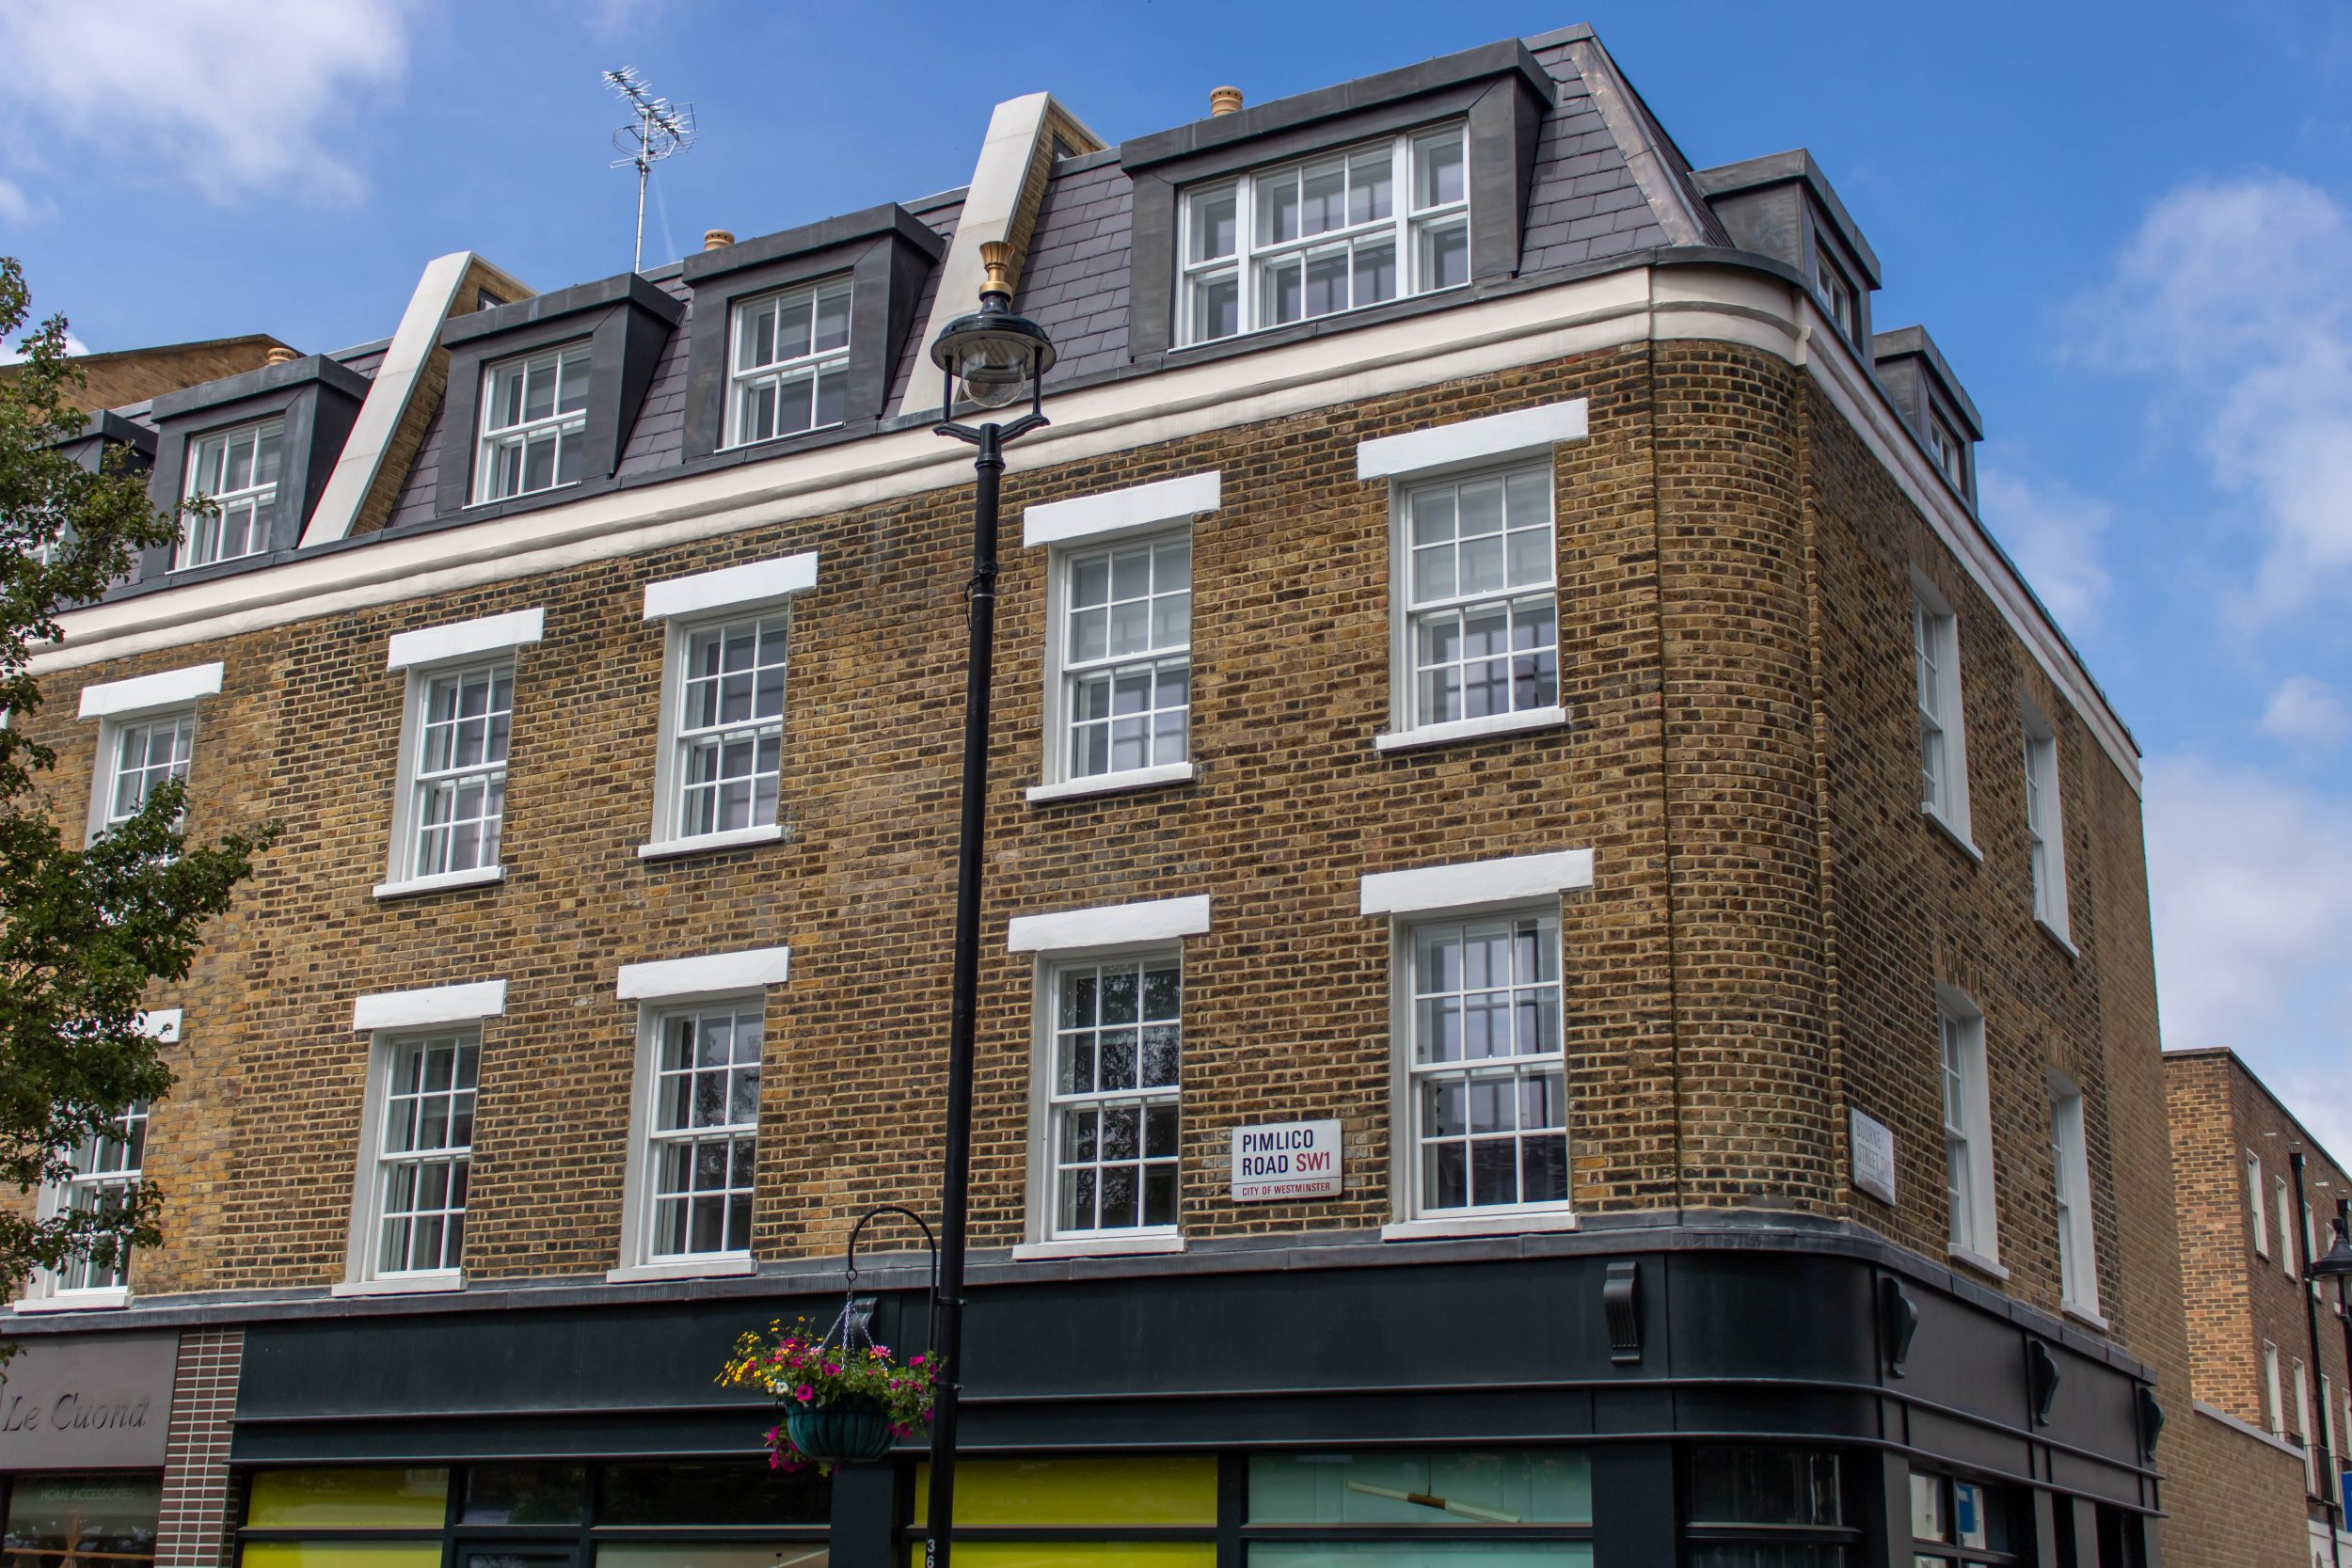 Sash Windows, Pimlico Road, Central London